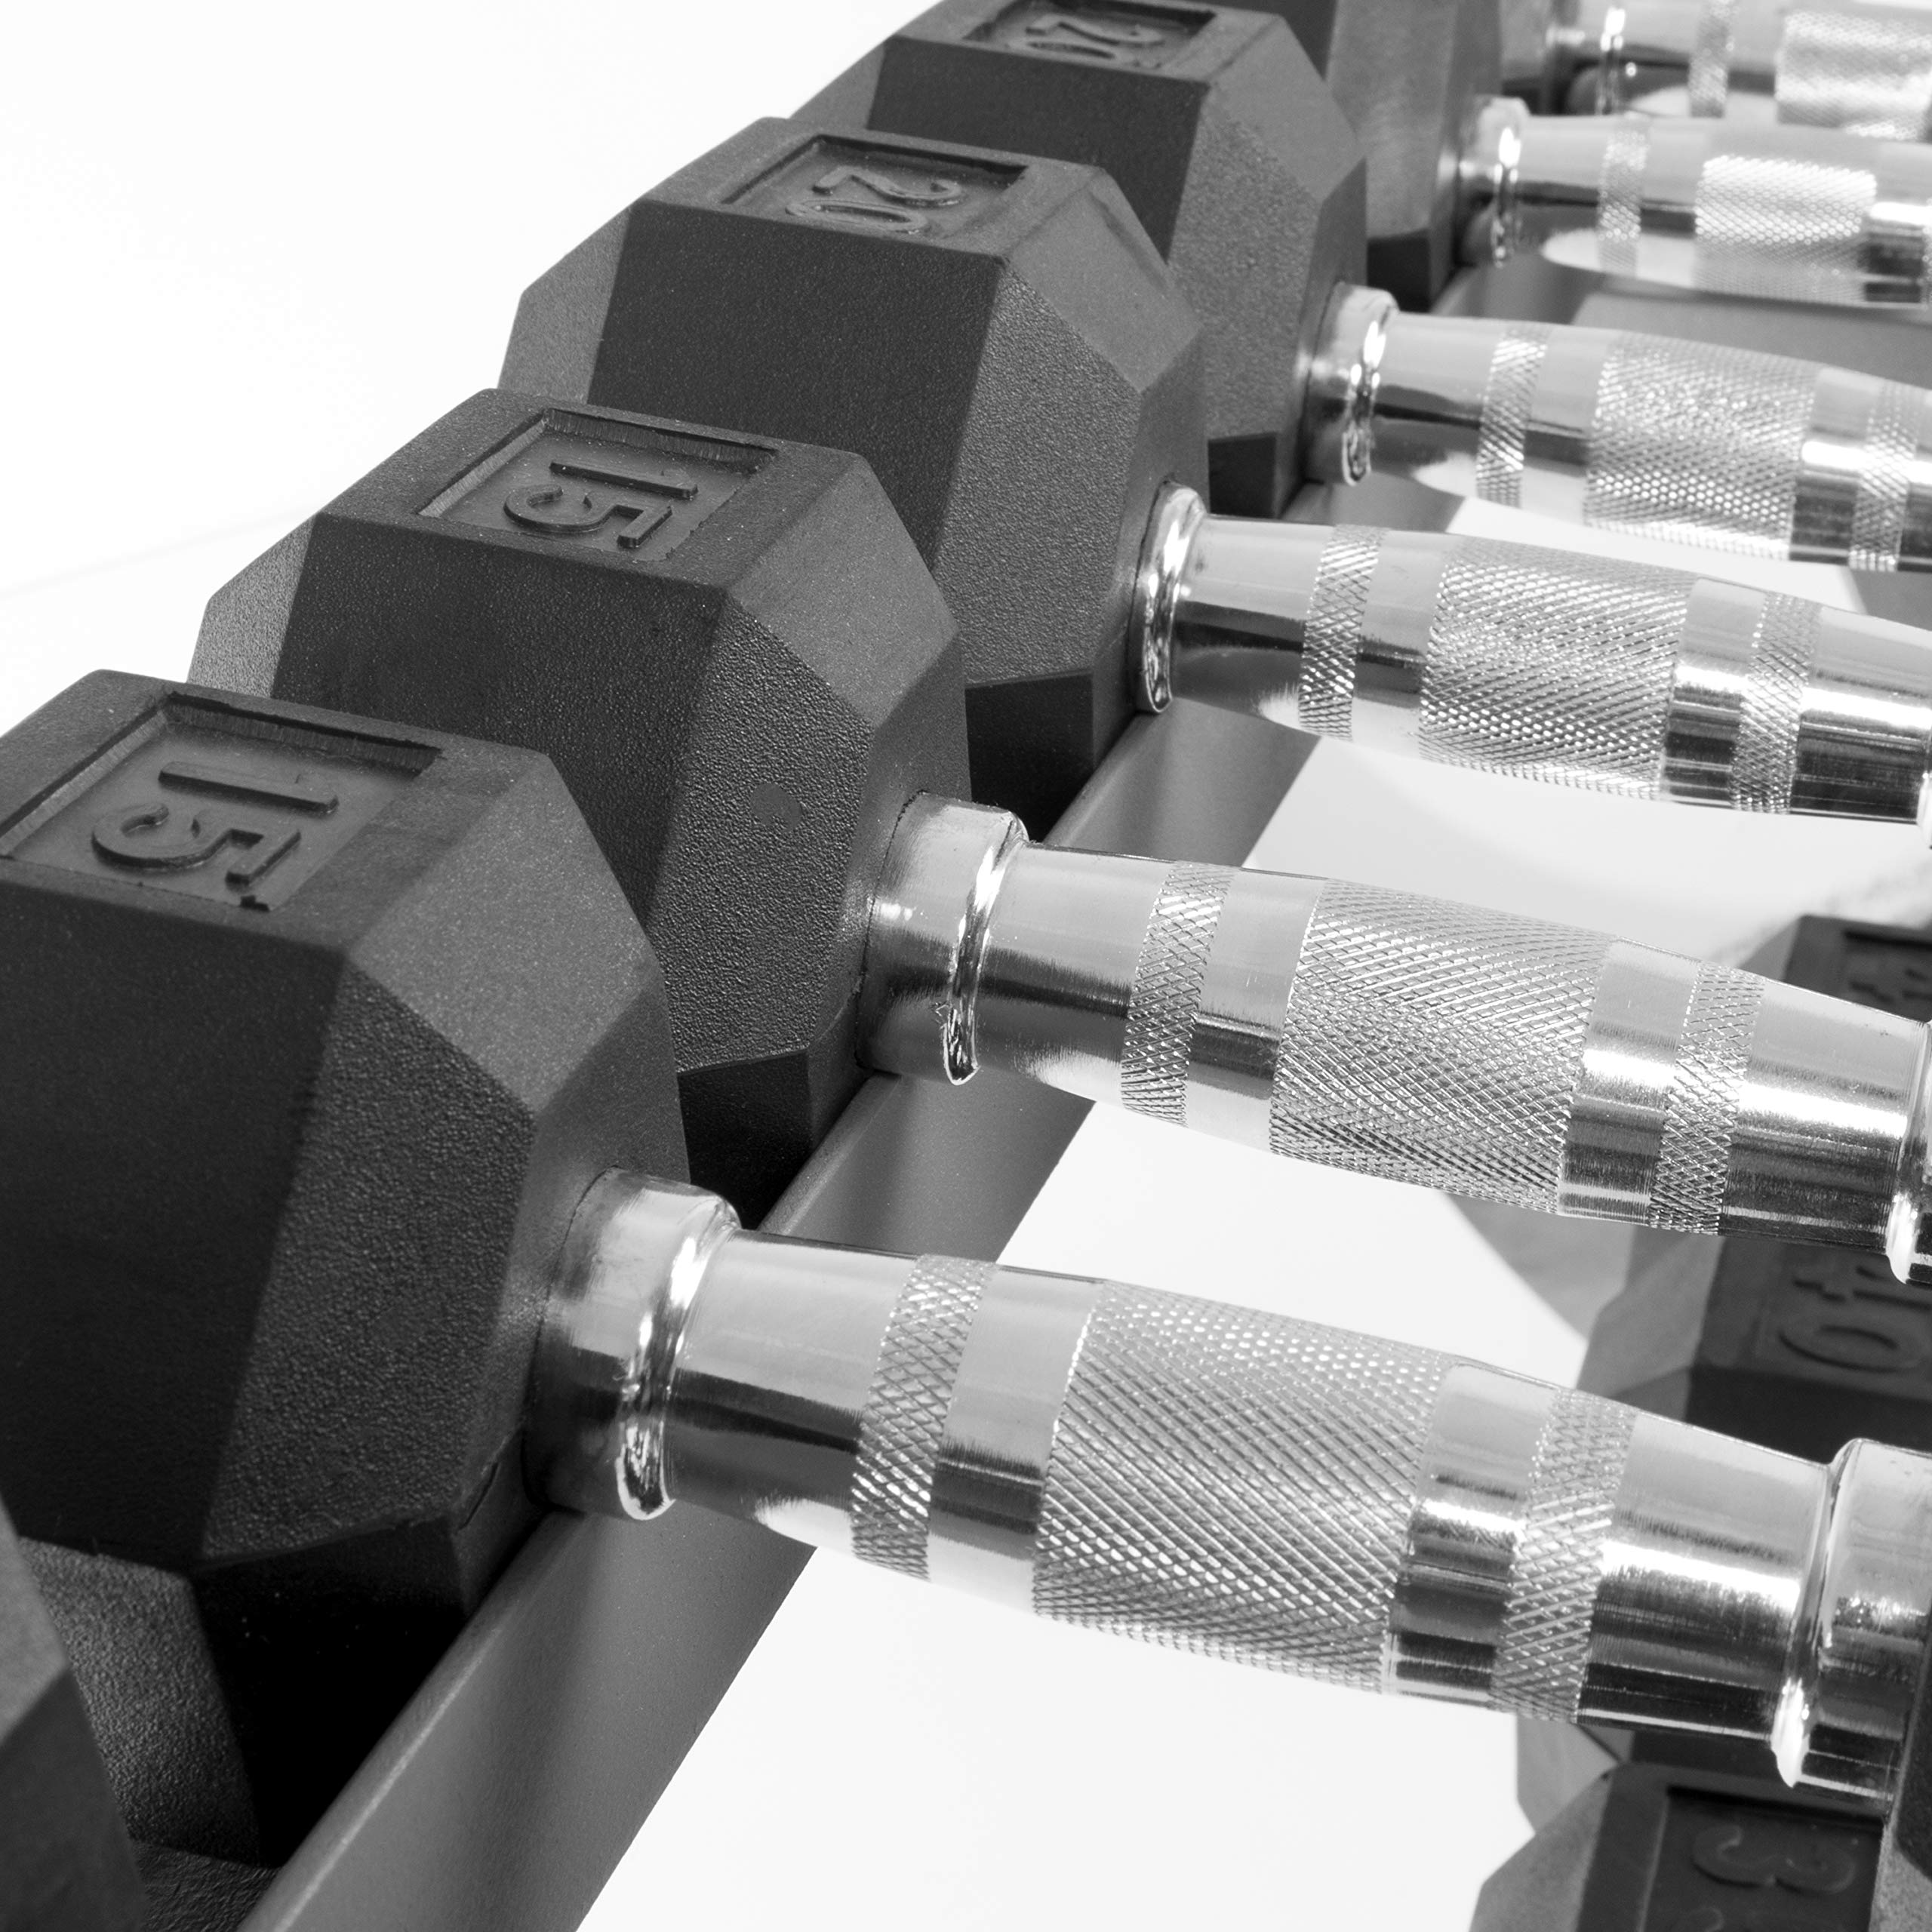 XMark All-in-One Dumbbell Rack, Plate Weight Storage and Dual Vertical Bar Holder, Design Patent Pending by XMark (Image #5)